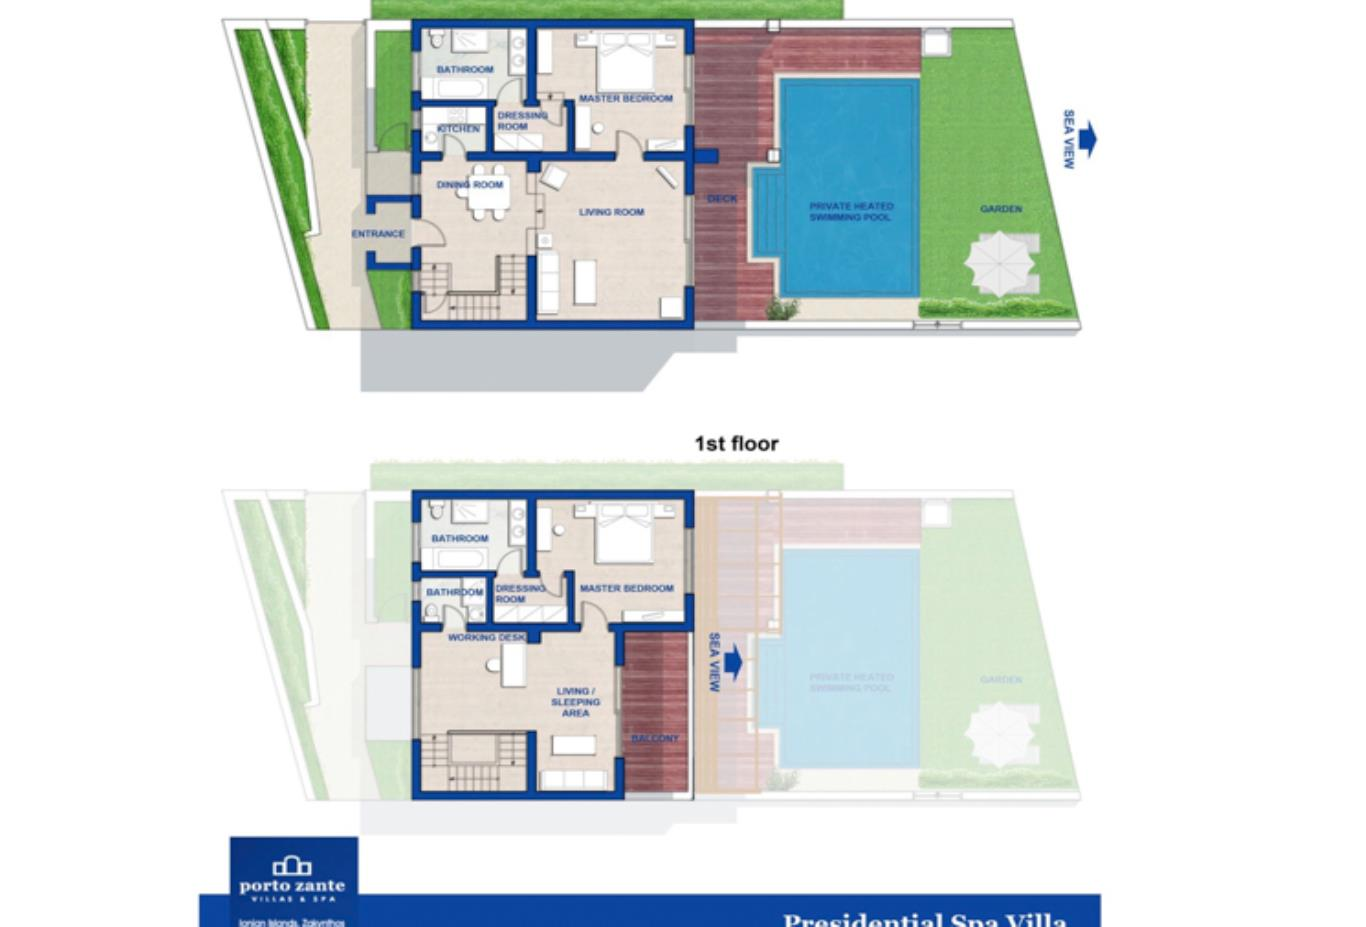 Presidential Spa Villa floorplan